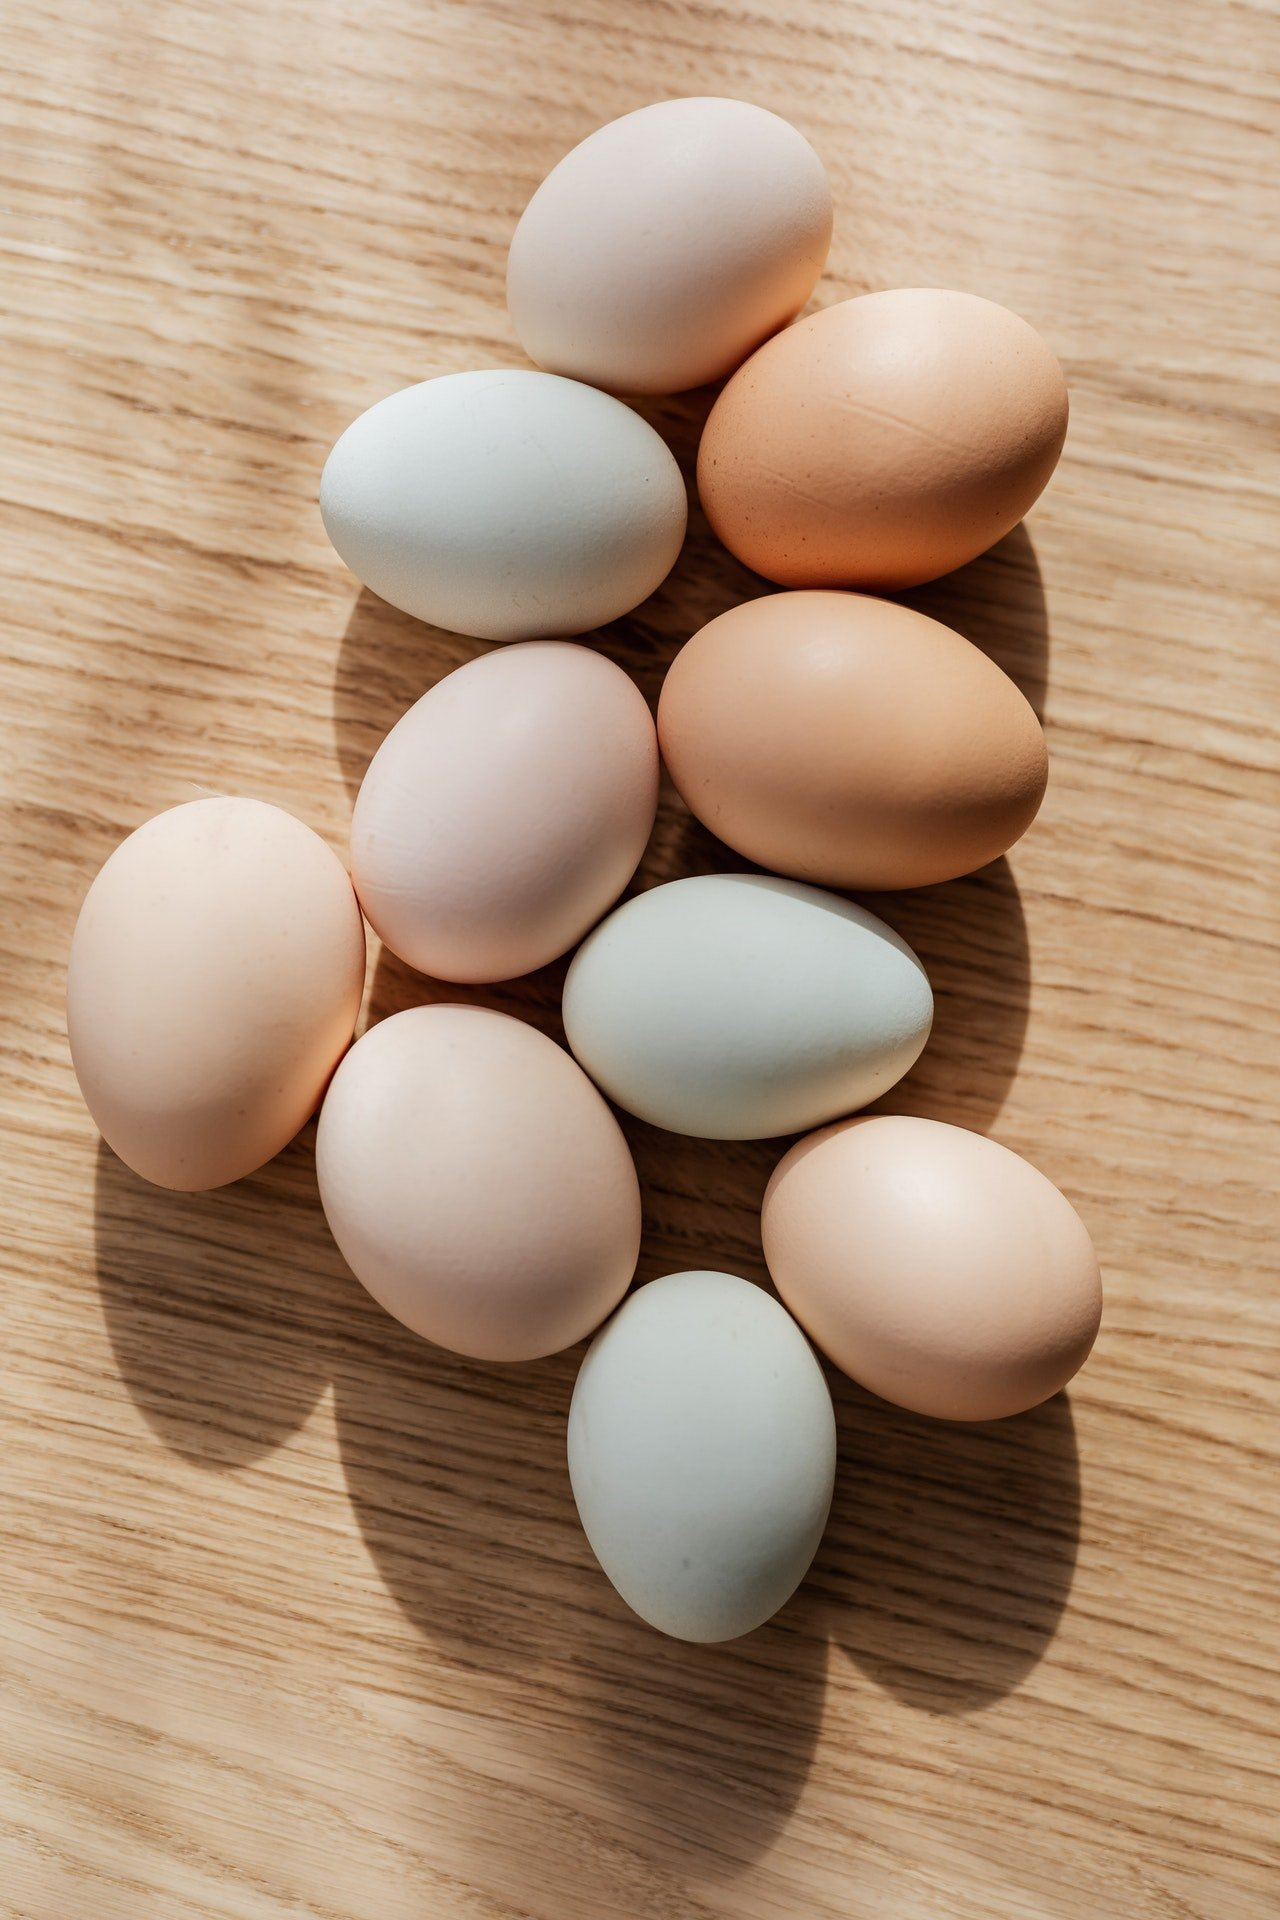 Photo of eggs on a table | Photo: Pexels